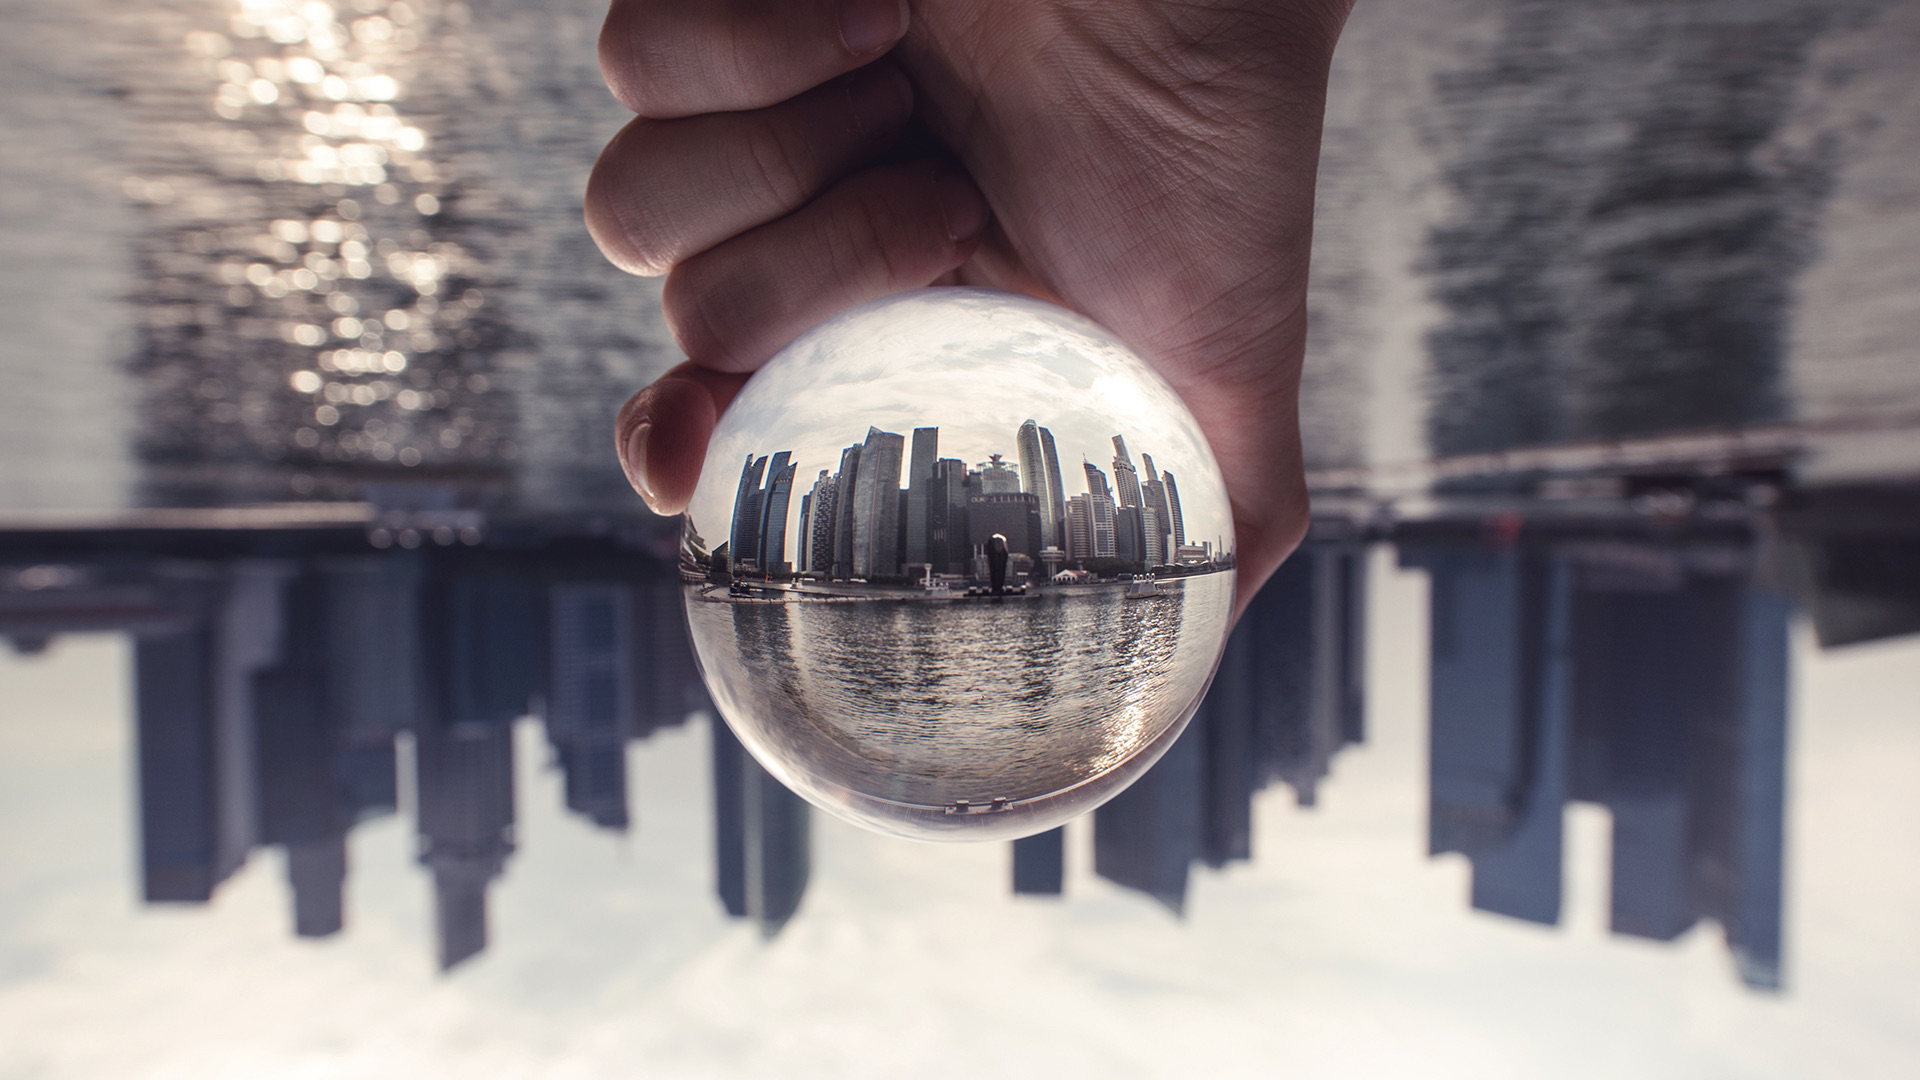 Here's how to get that creative crystal ball effect in your photography